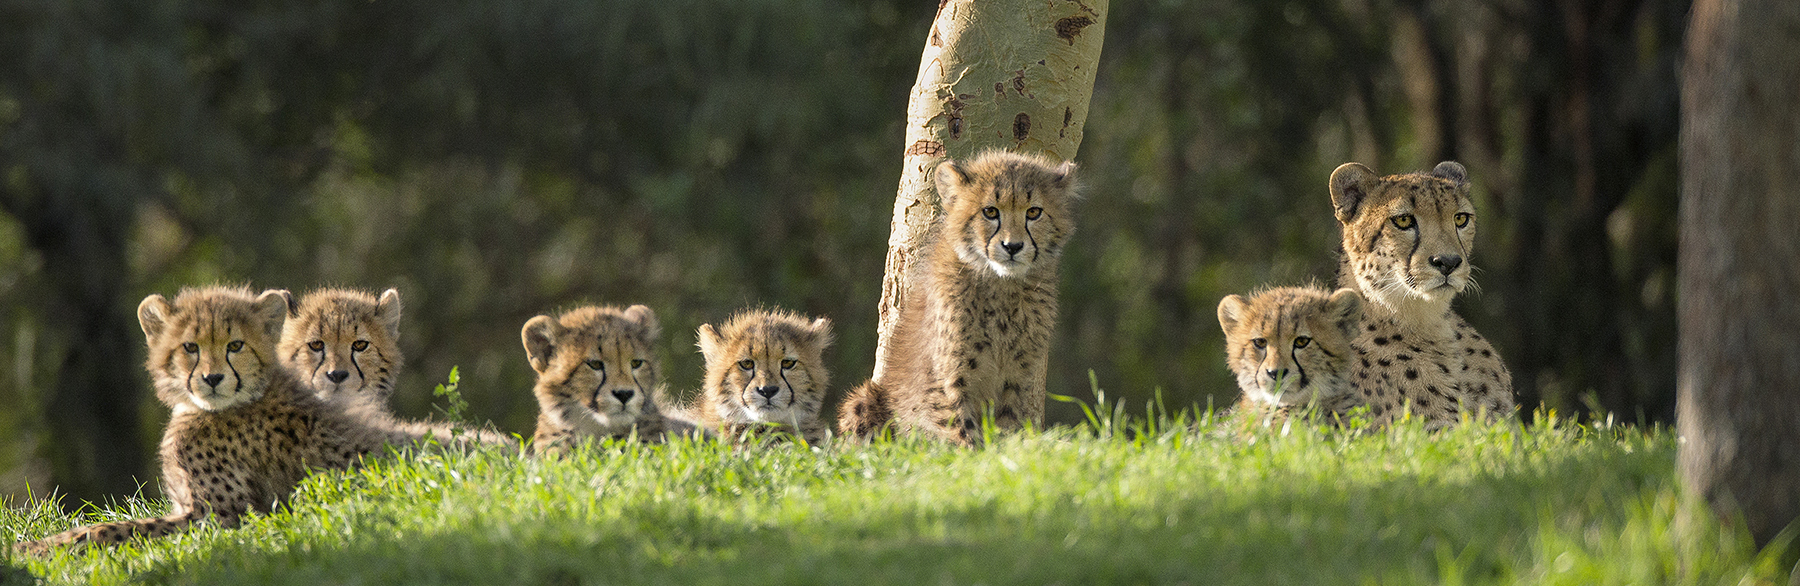 GET AN EYEFUL With six fast, feisty cheetah cubs, mom Addison has a lot to keep track of. The cubs are also doing a lot of watching, as their Okavango Outpost exhibit area provides a commanding view of rhinos, giraffes, and other animals in East Africa.